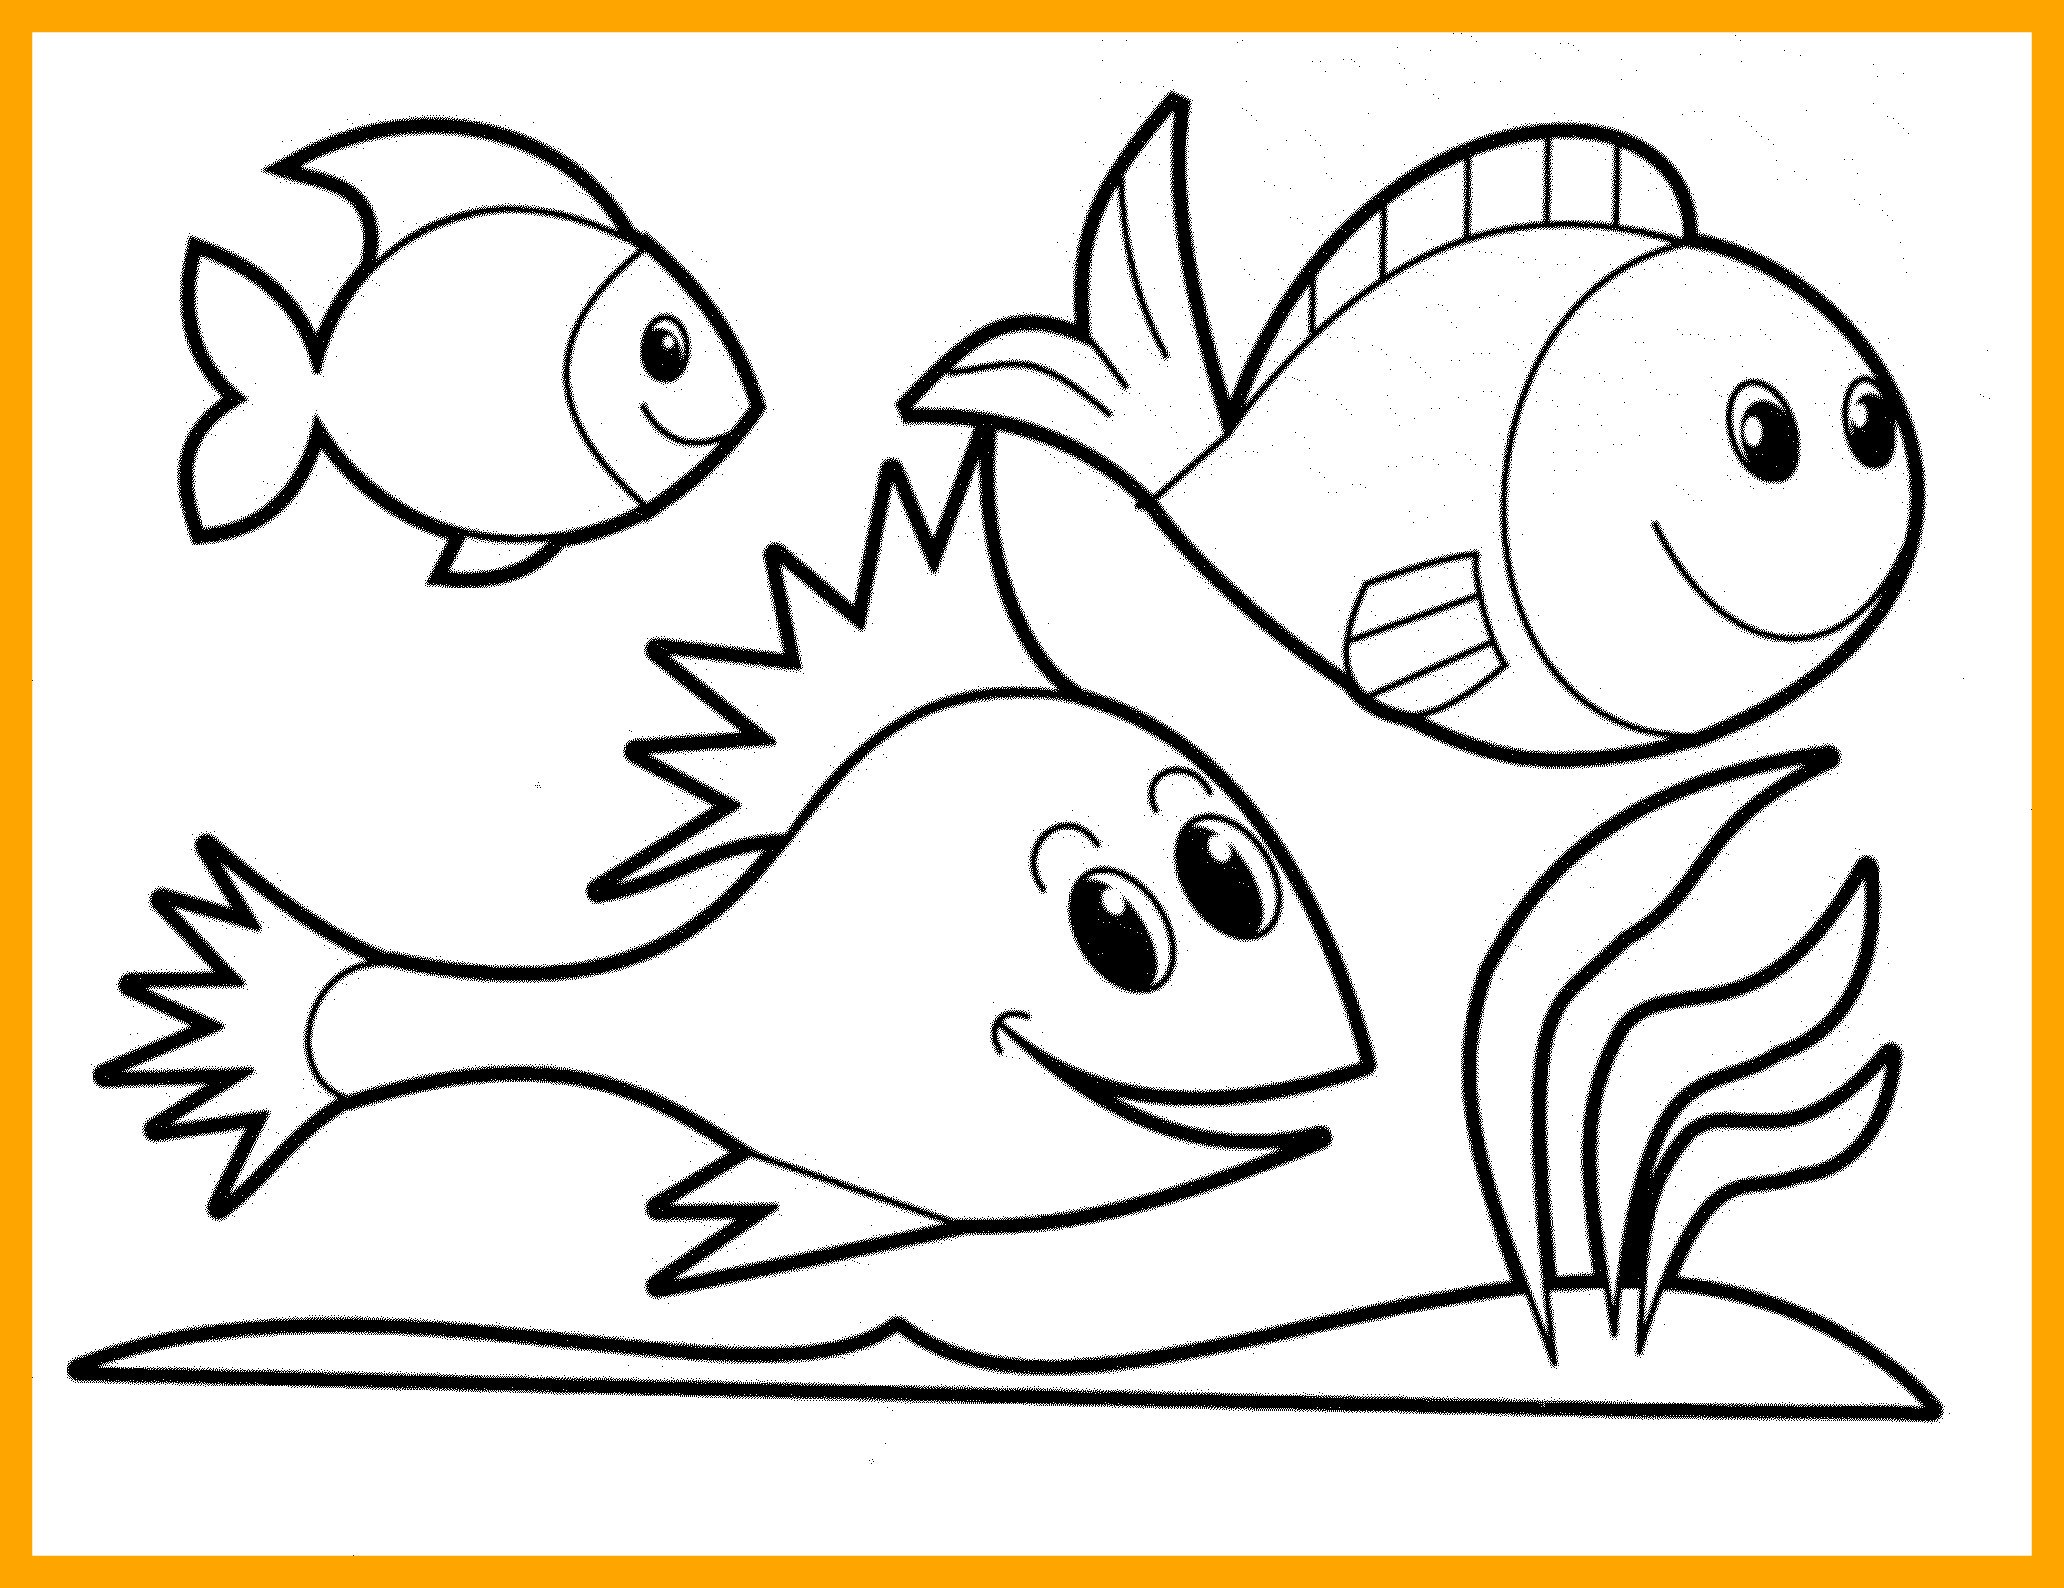 Cartoon Fish Coloring Pages At Getcolorings